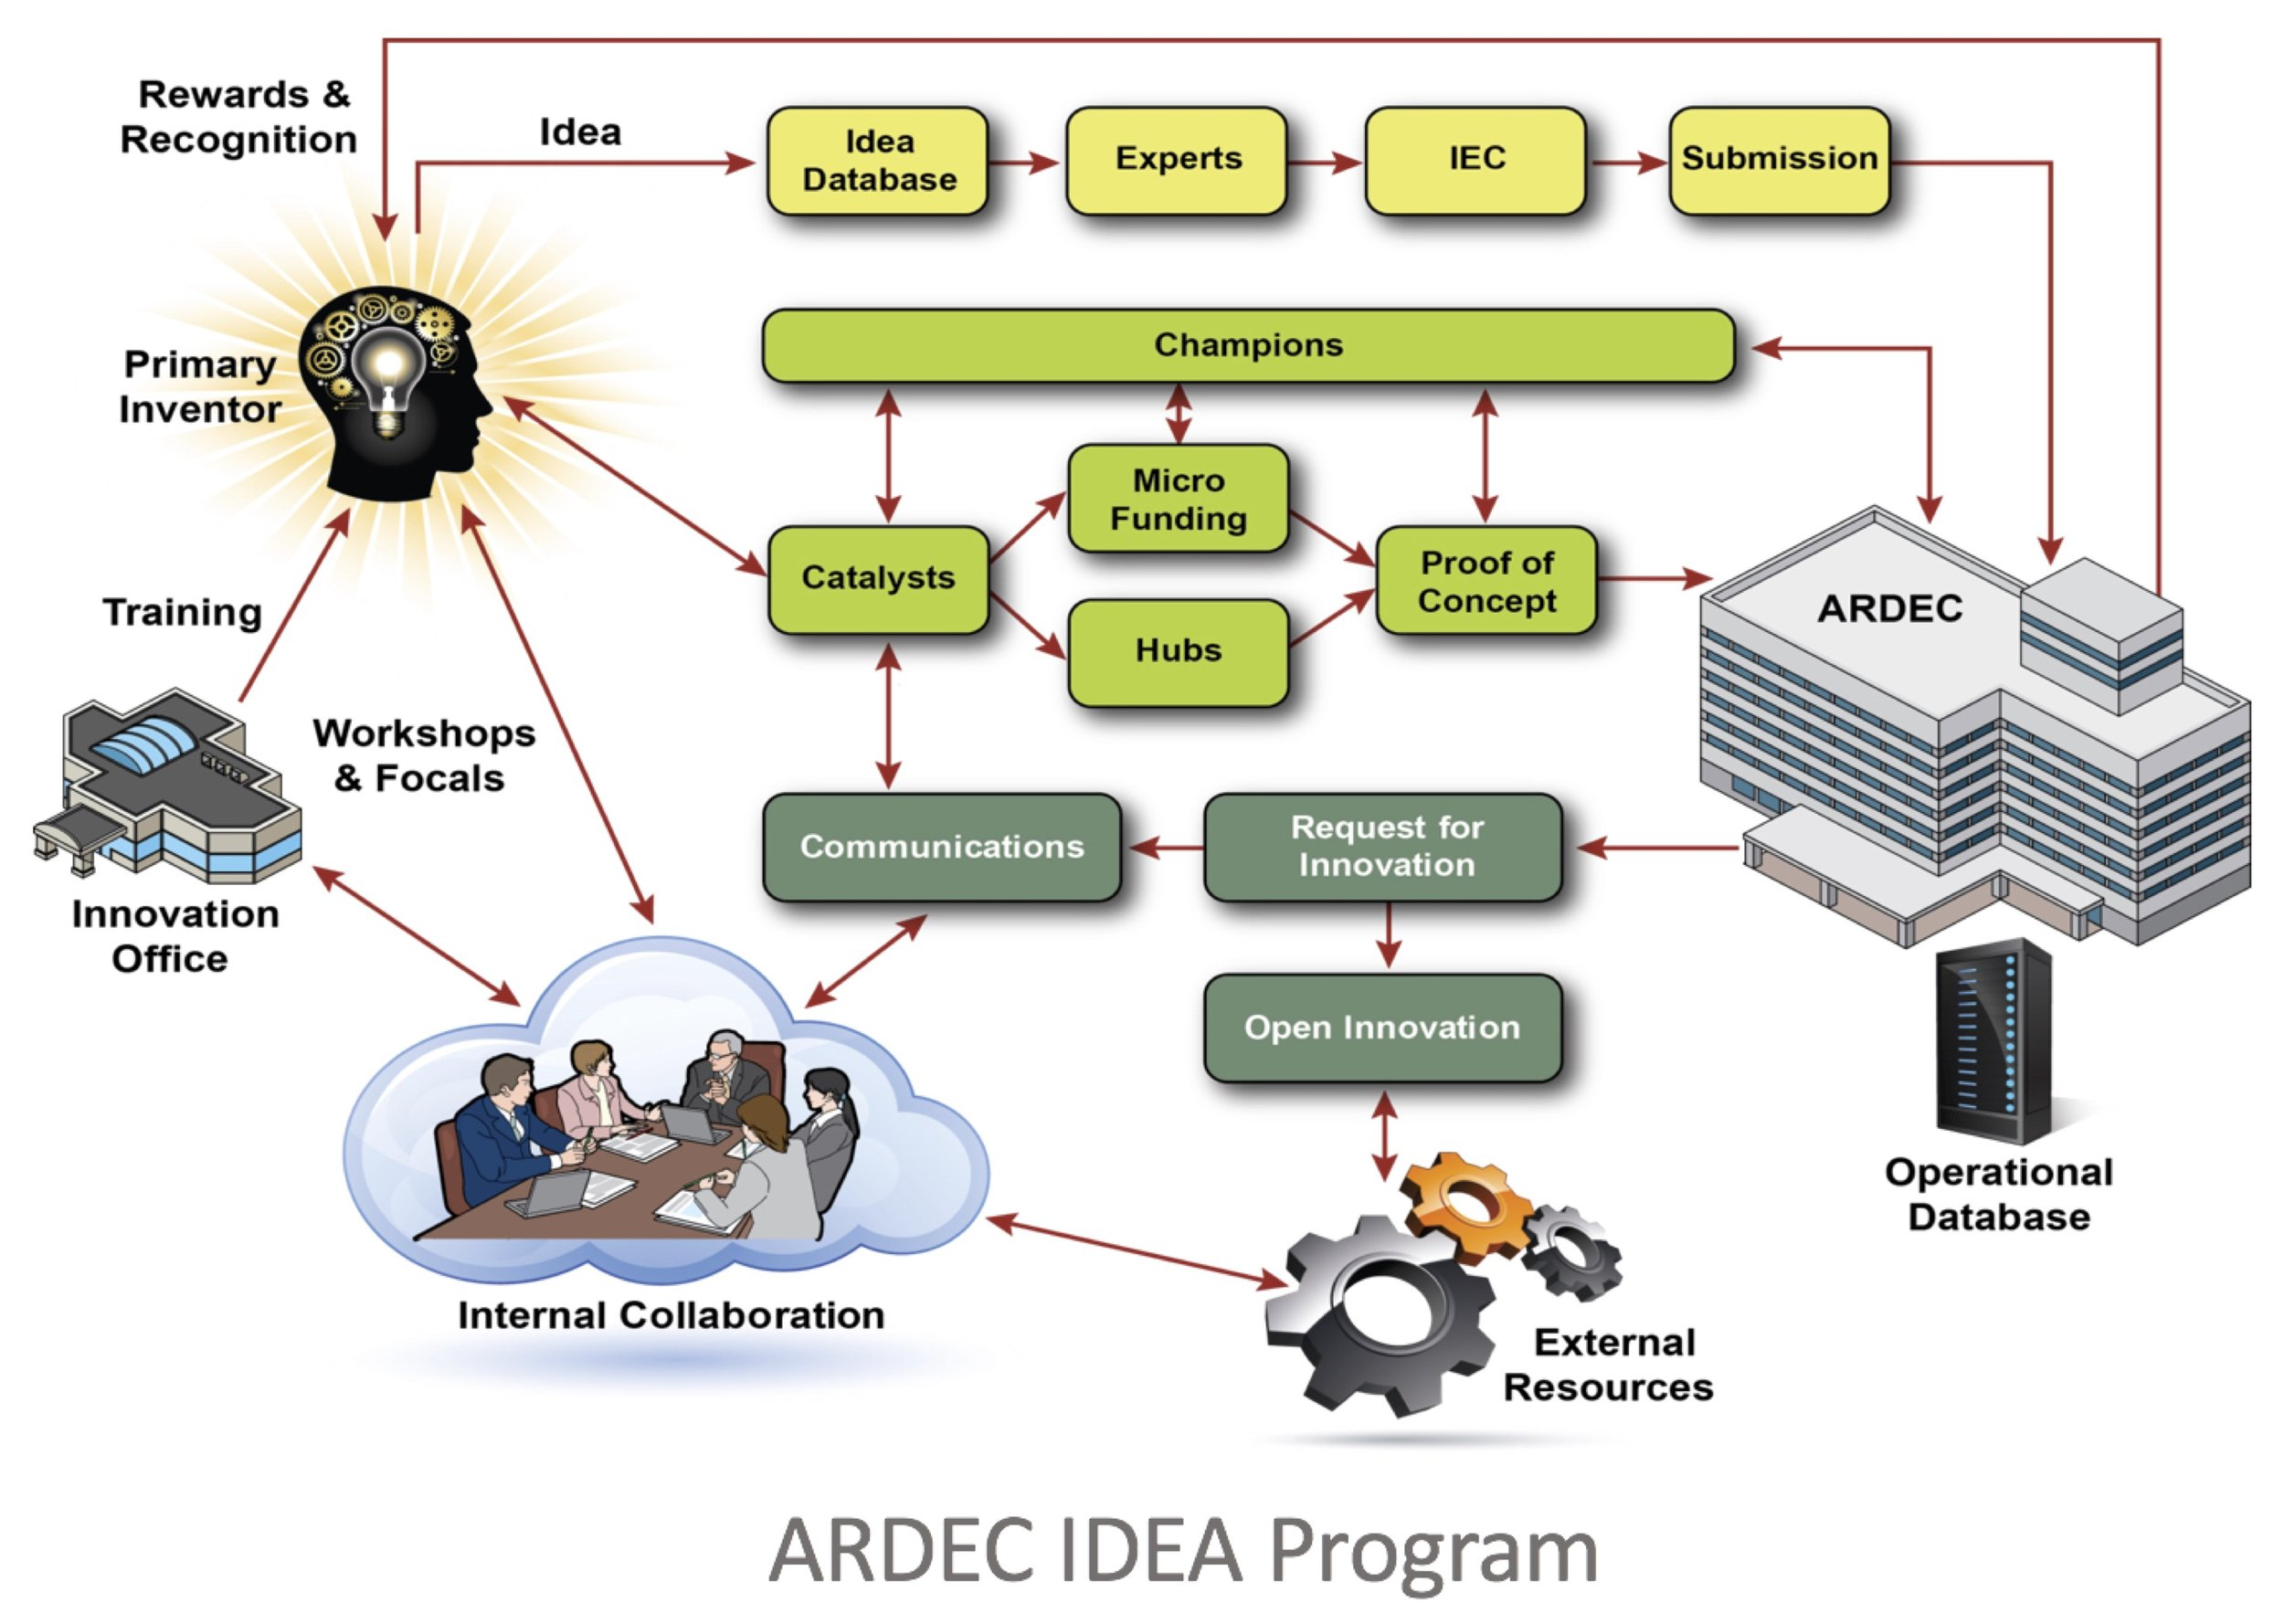 ARDEC - ARDEC is the US Army's largest R&D lab, with over 2800 engineers and scientists working on the nation's world leading armament solutions. We were asked to help it transform from a conservative research facility into an innovation powerhouse.